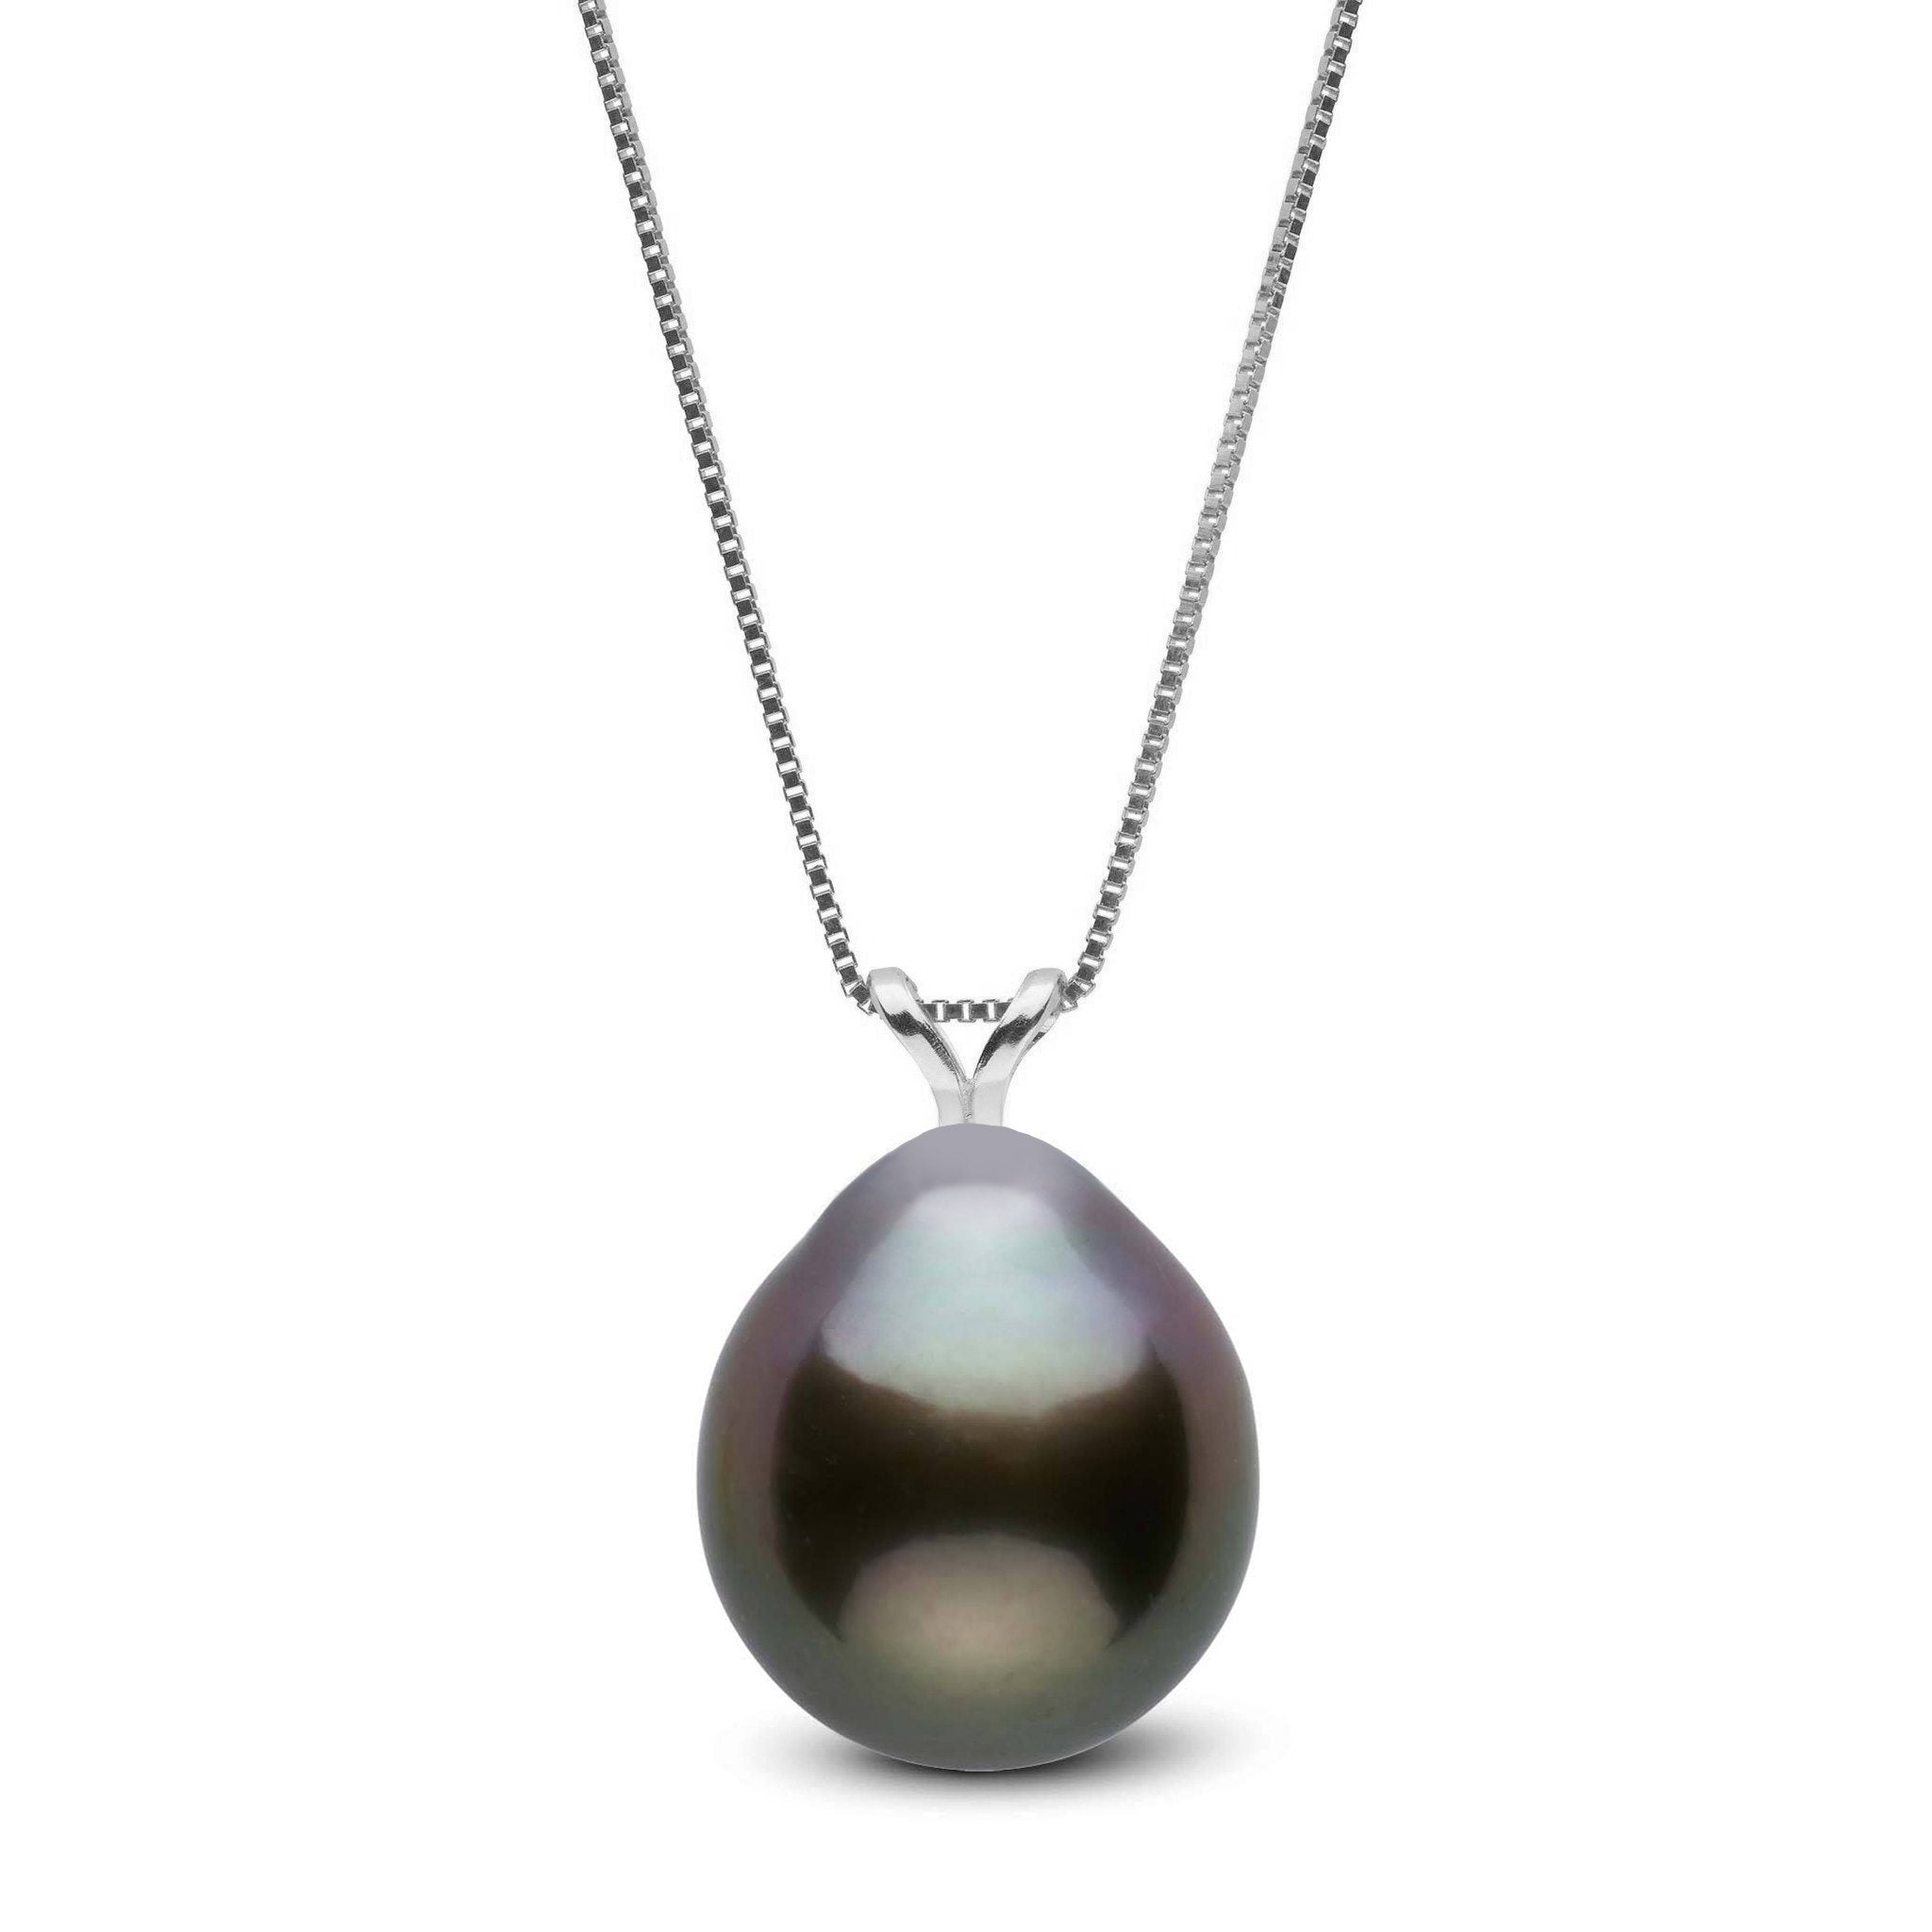 Unity Collection 10.0-11.0 mm Drop Tahitian Pearl Pendant